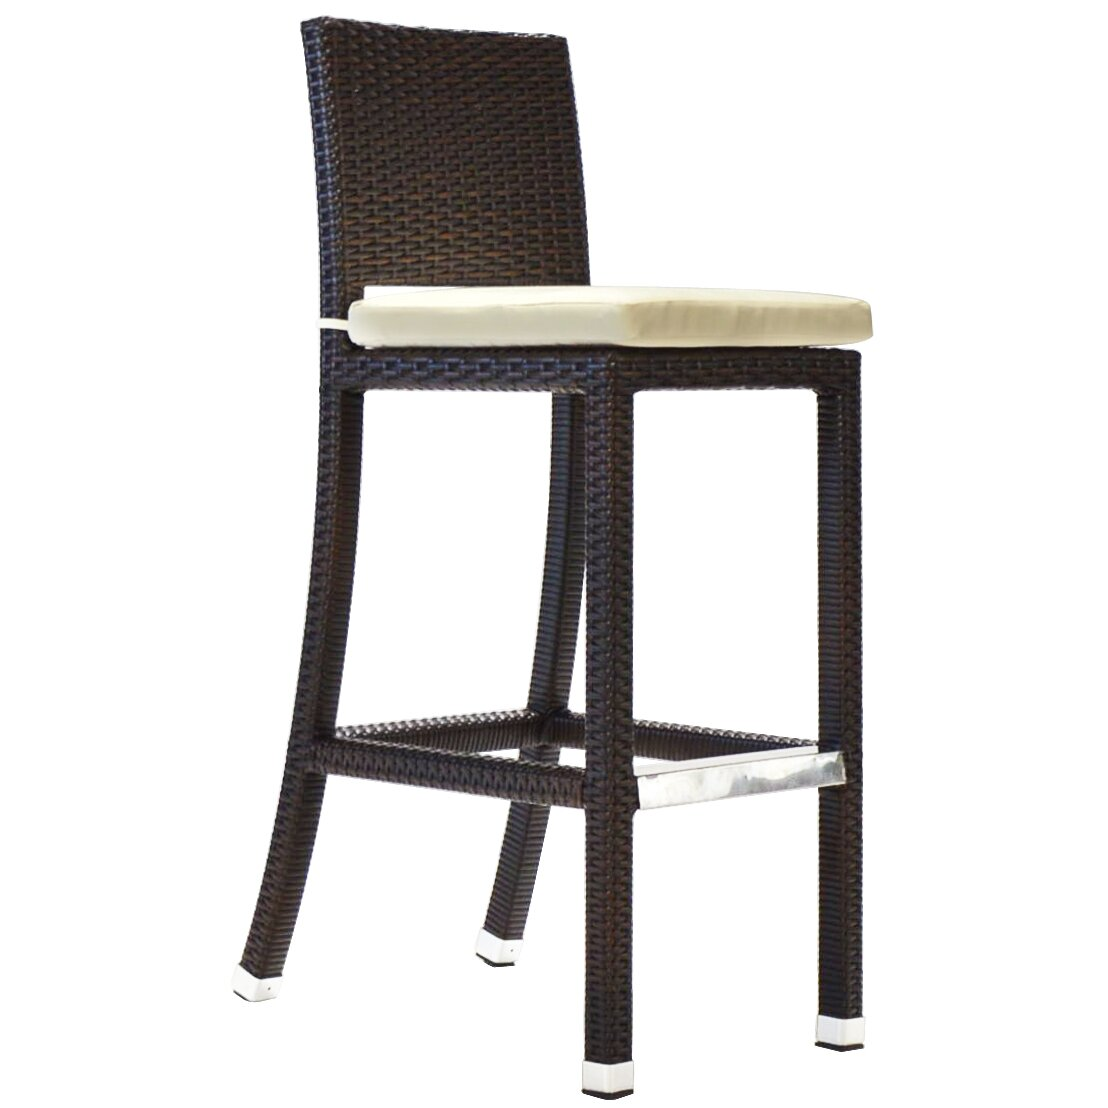 Bienal Crecent 305quot Bar Stool with Cushion amp Reviews  : Bienal Crecent 305 Barstool from www.wayfair.com size 1108 x 1108 jpeg 110kB